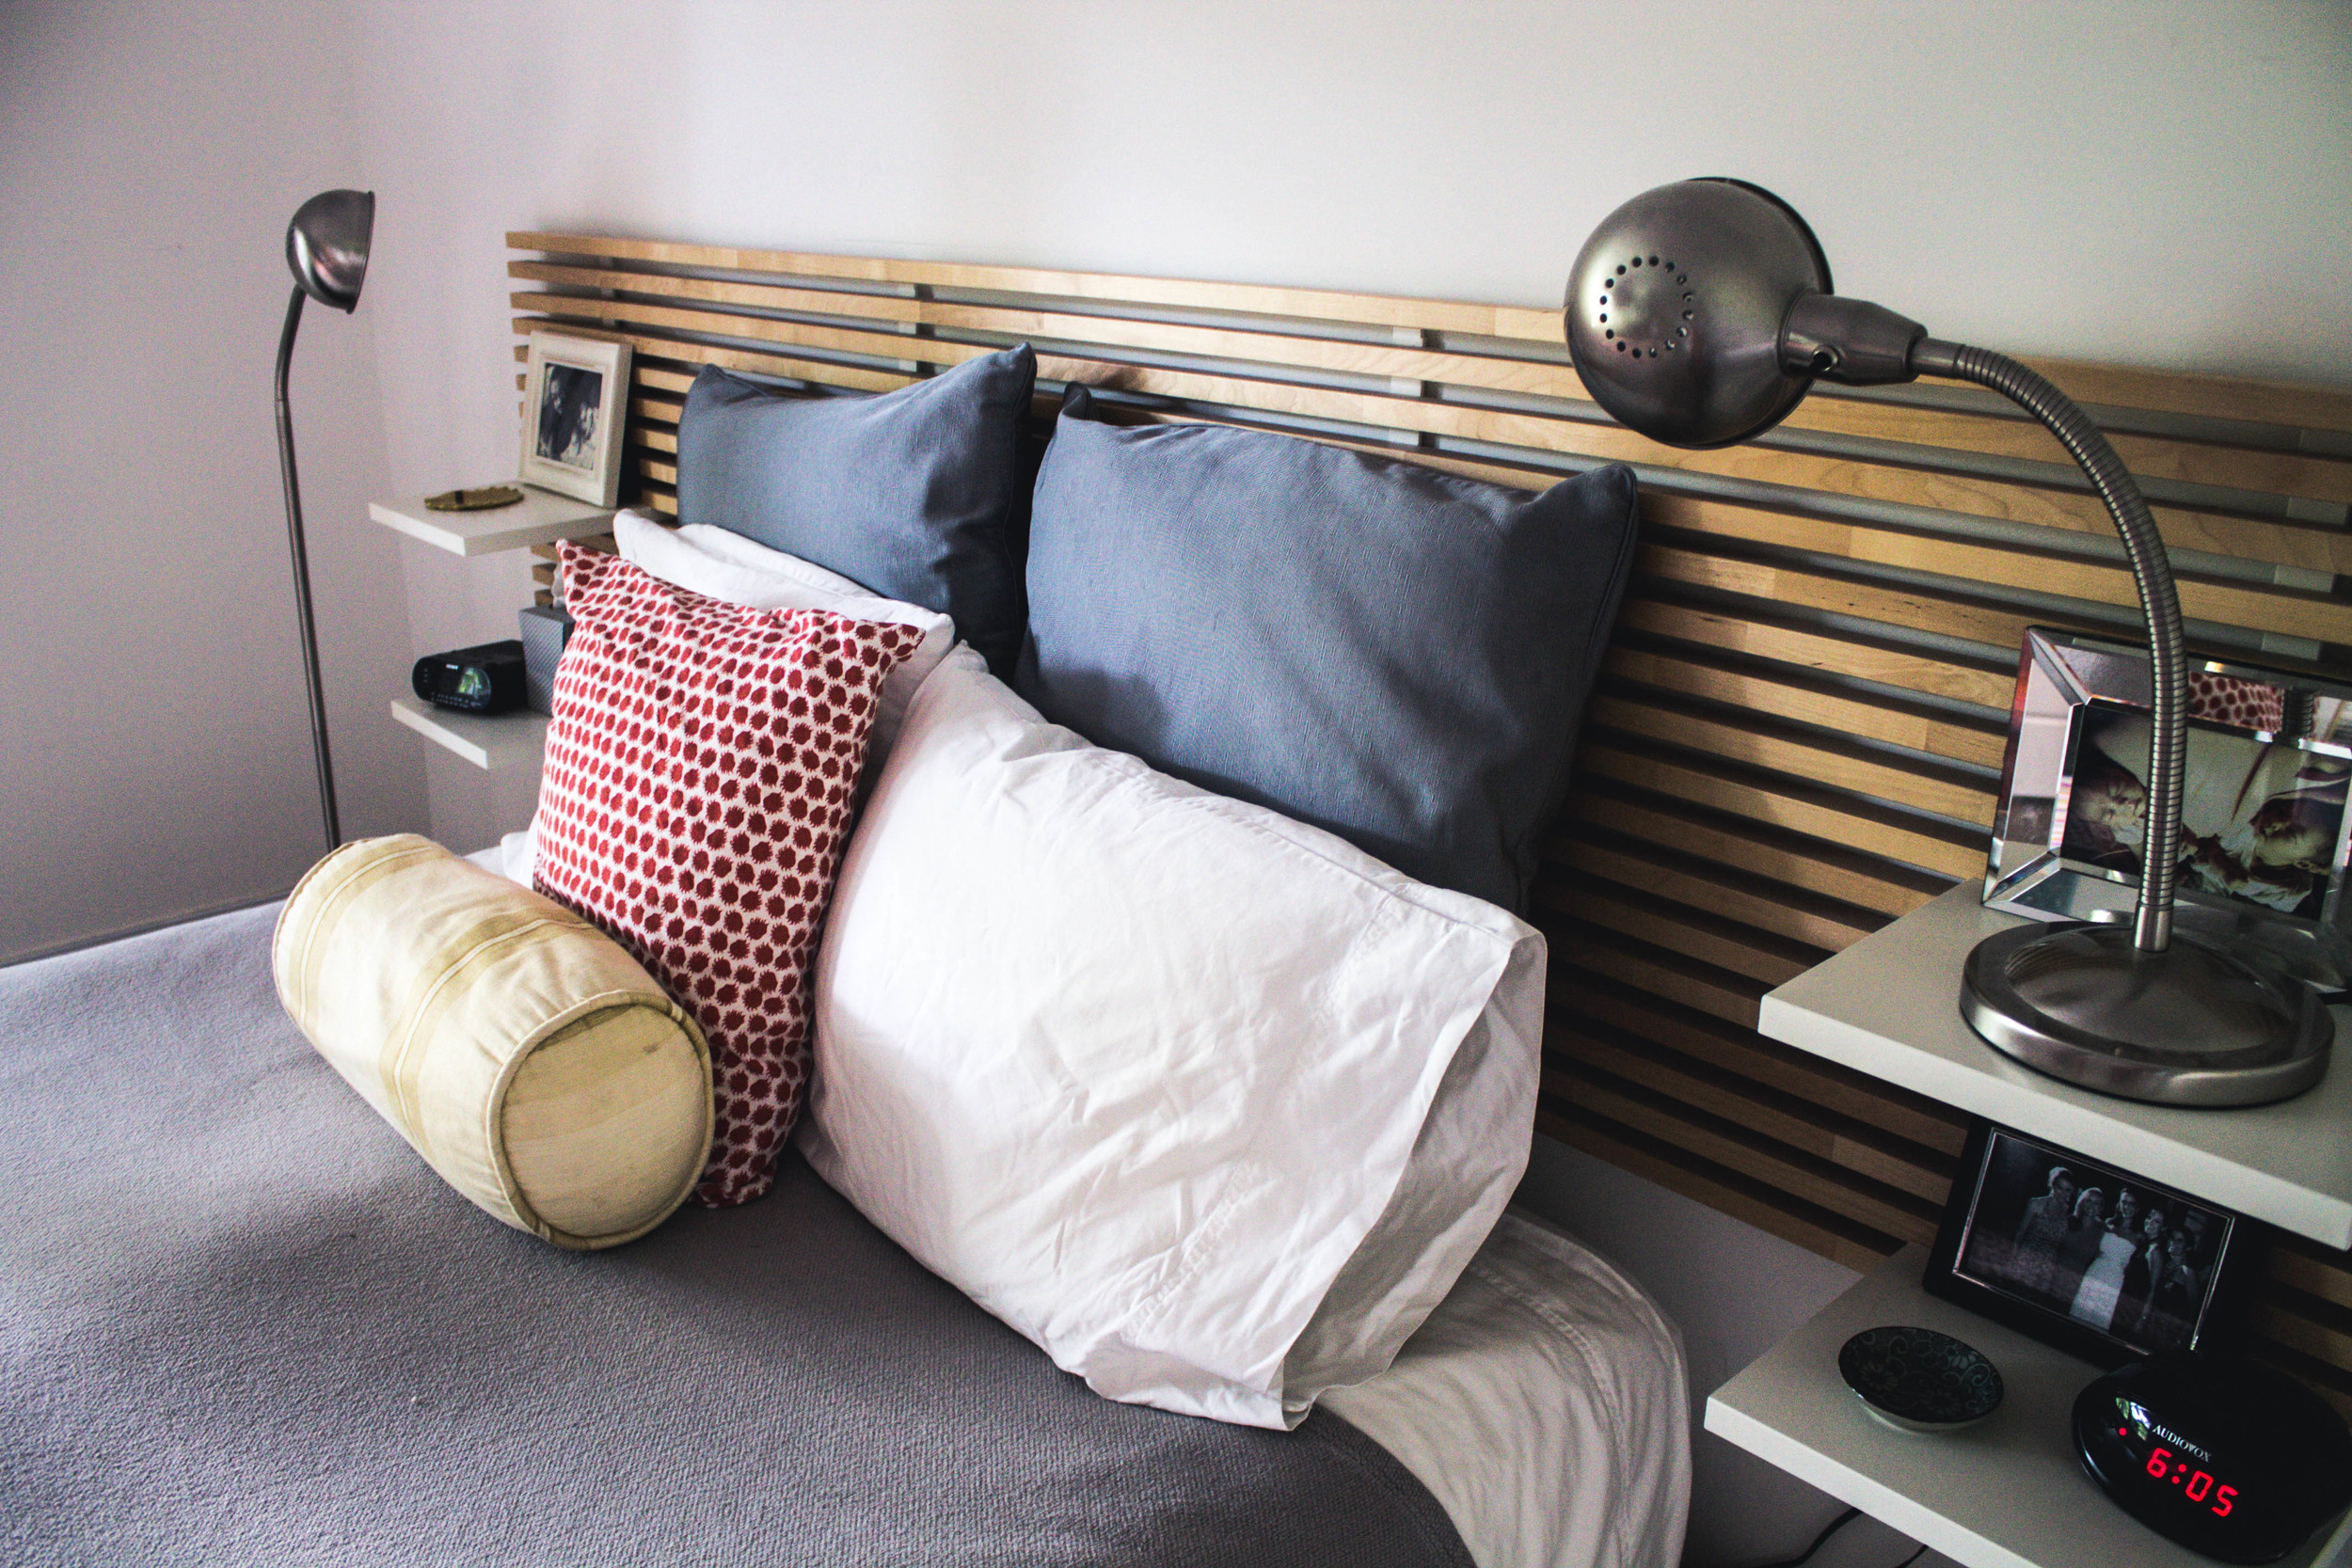 The master bedroom is dominated by an IKEA bed and linens that bring energy and movement while also fostering rest and rejuvenation.